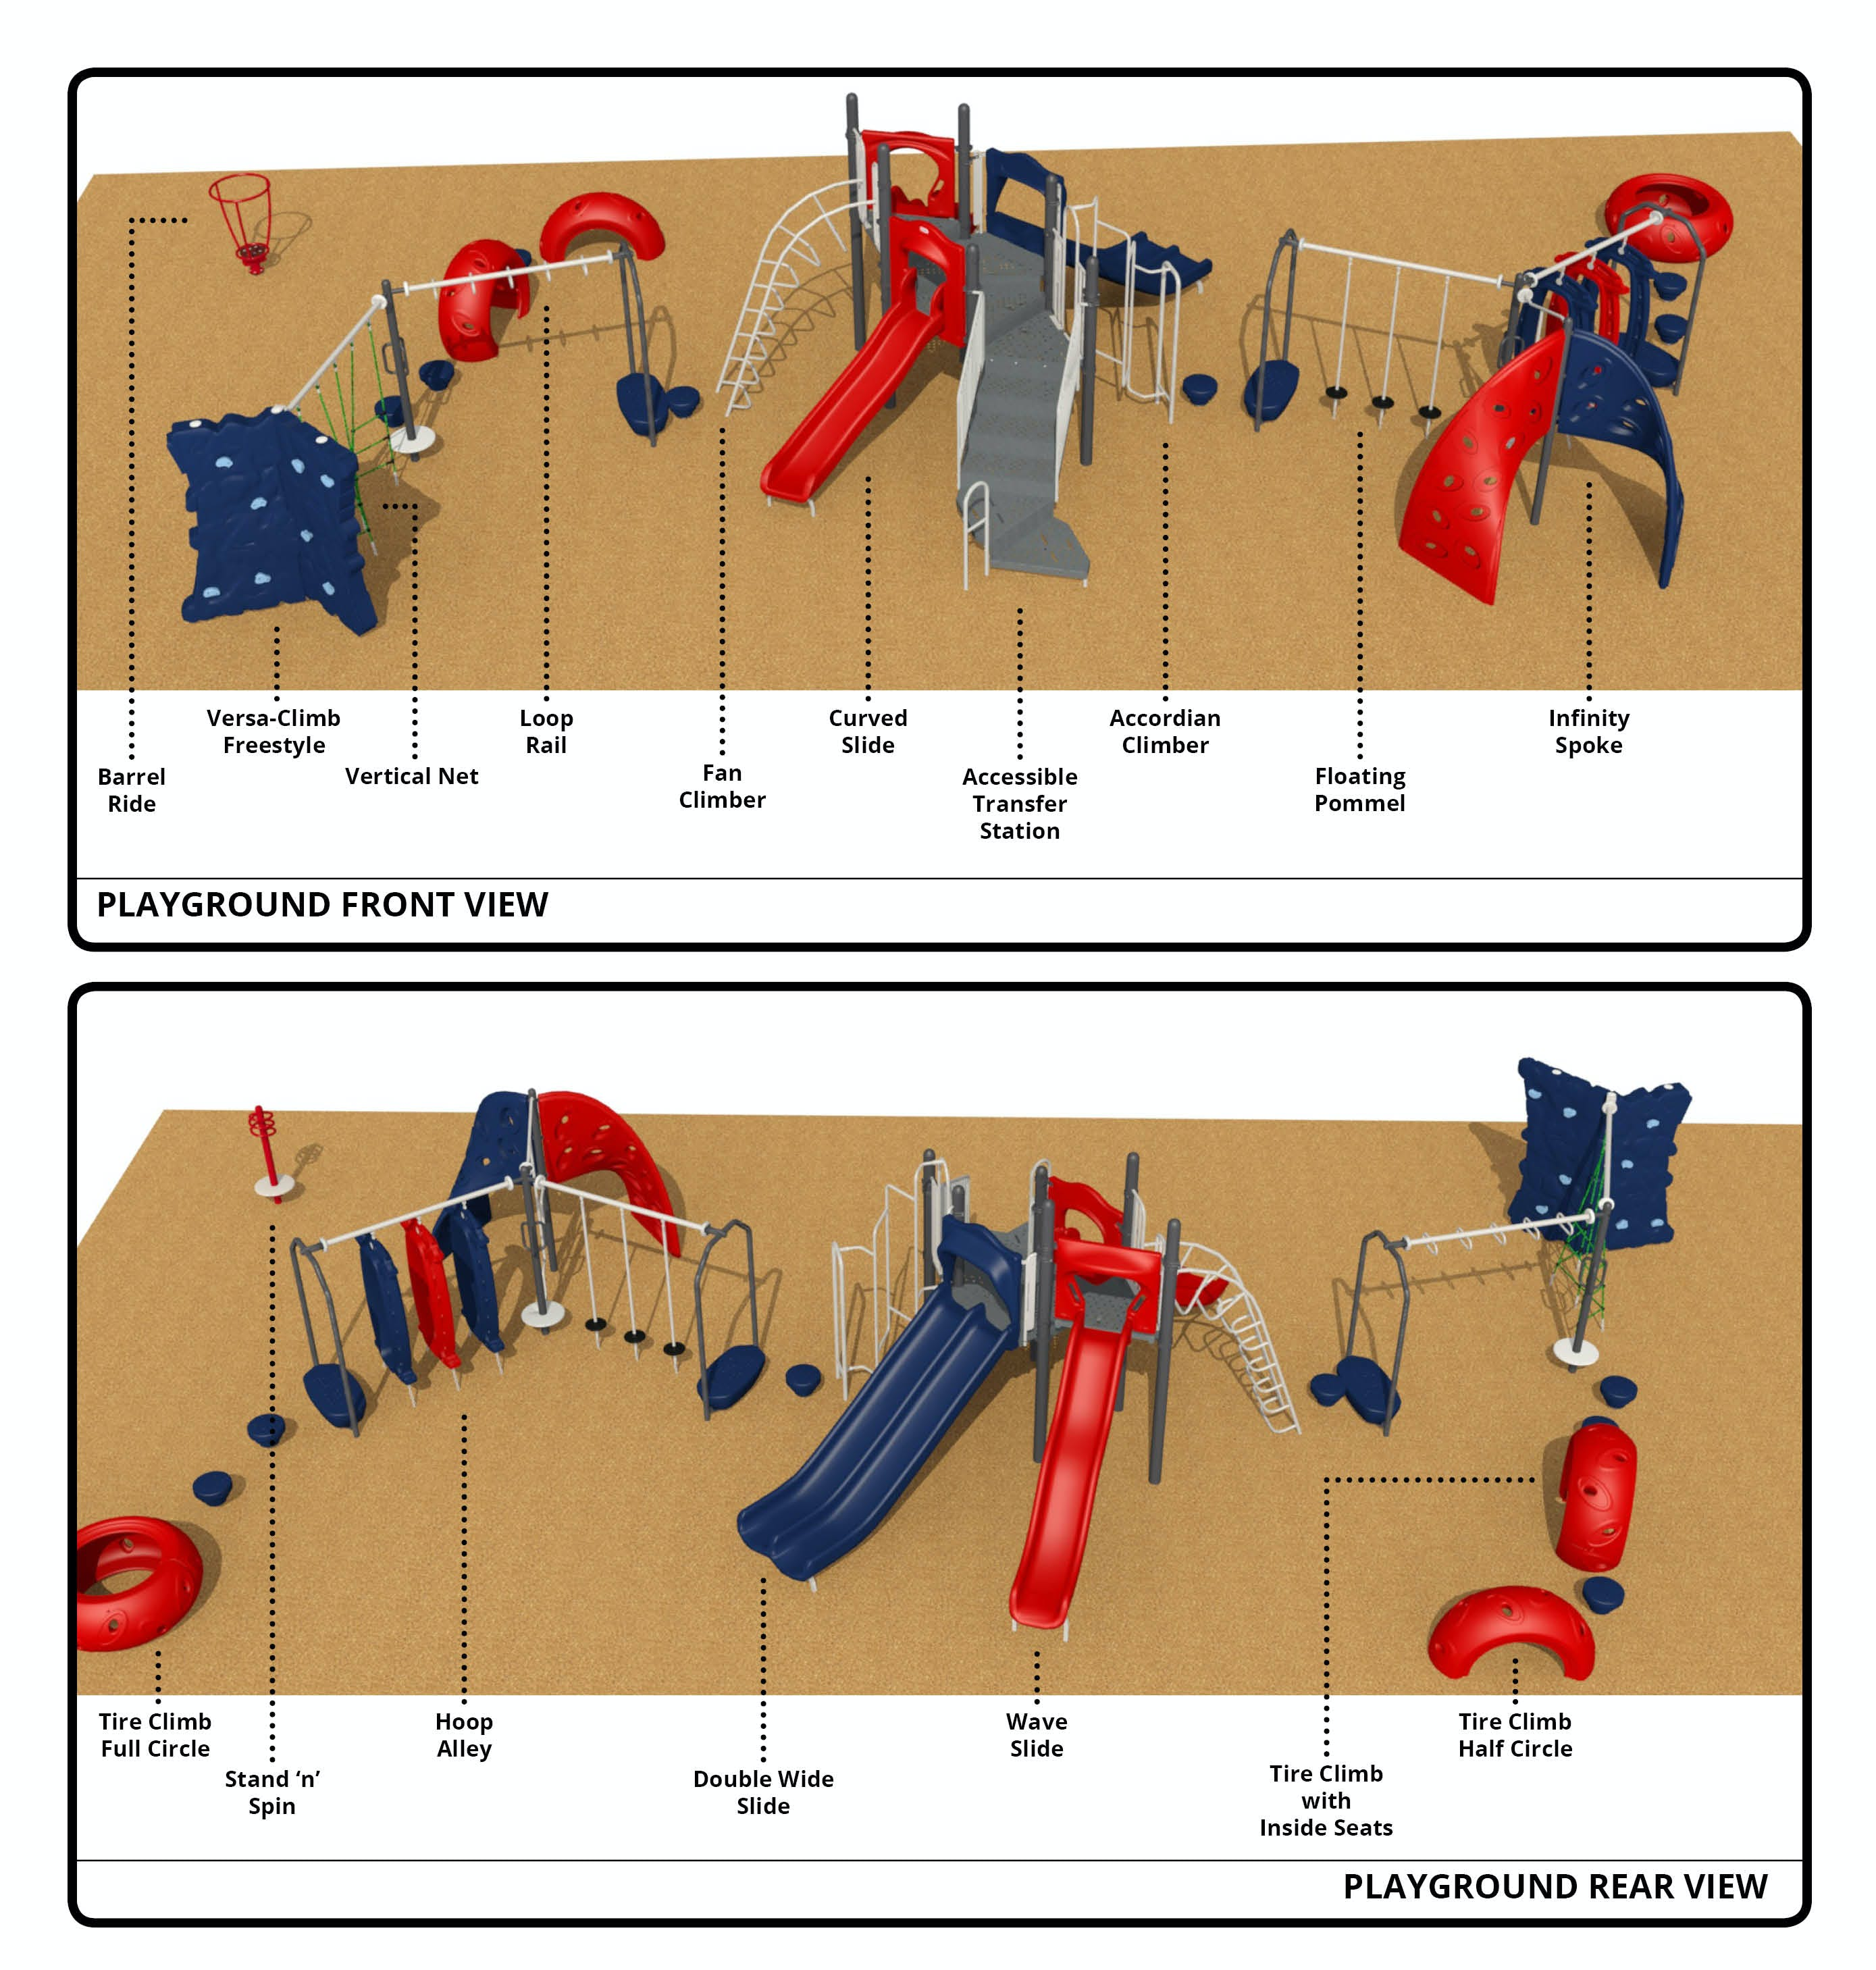 Final Playground Features